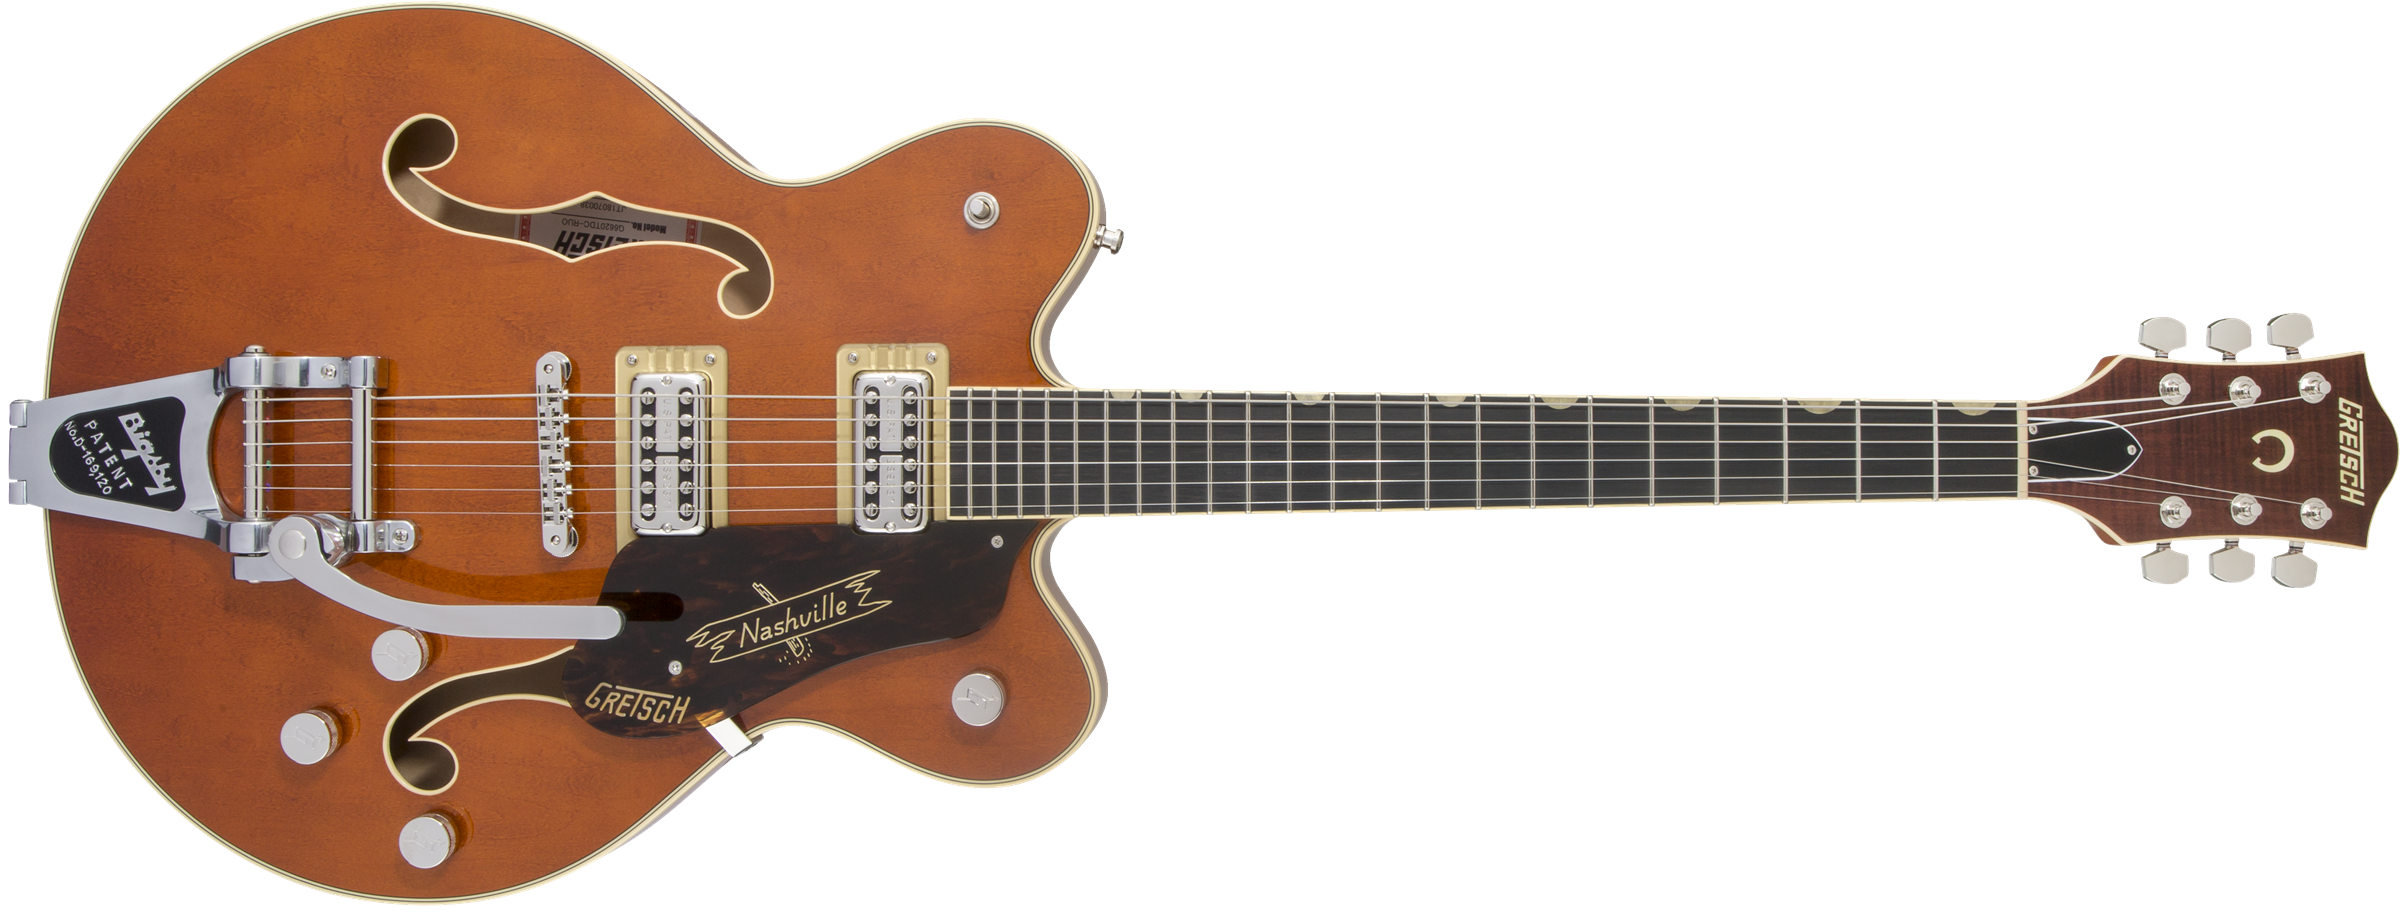 GRETSCH-G6620T-Players-Edition-Nashville-Center-Block-Double-Cut-with-String-Thru-Bigsby-FilterTron-Pickups-Round-Up-Orange-sku-571002969